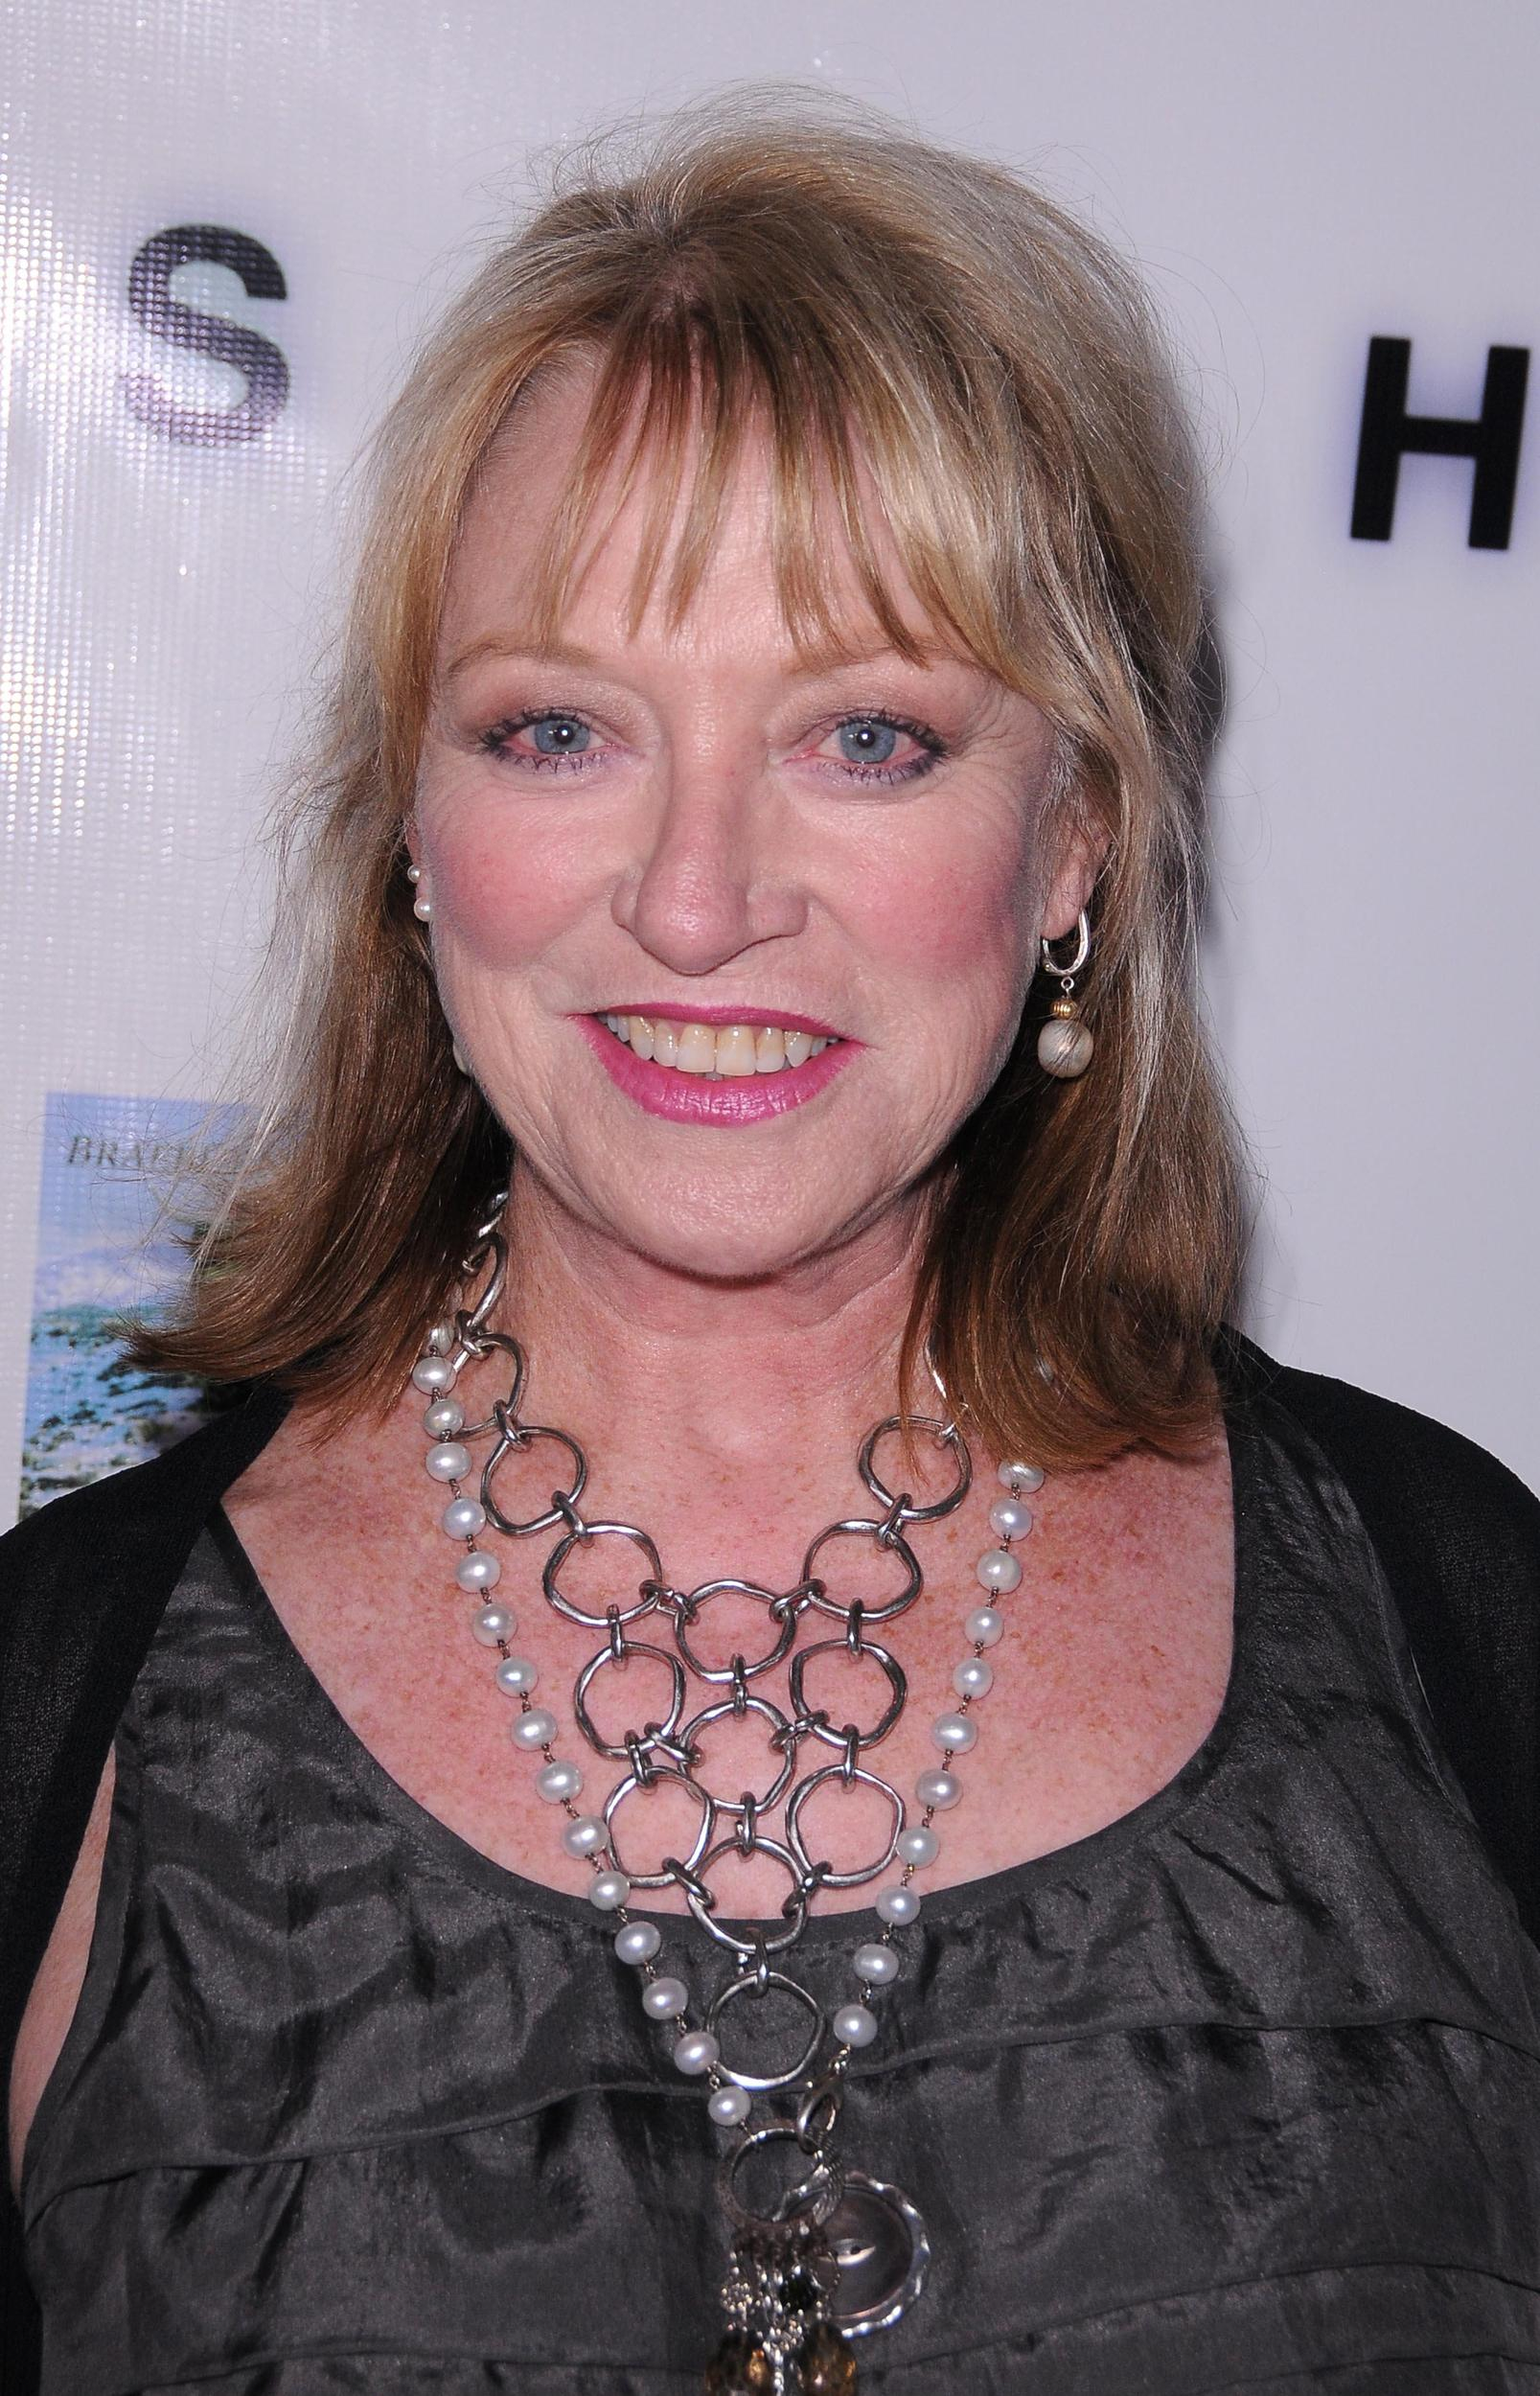 Veronica Cartwright | Criminal Minds Wiki | FANDOM powered ...